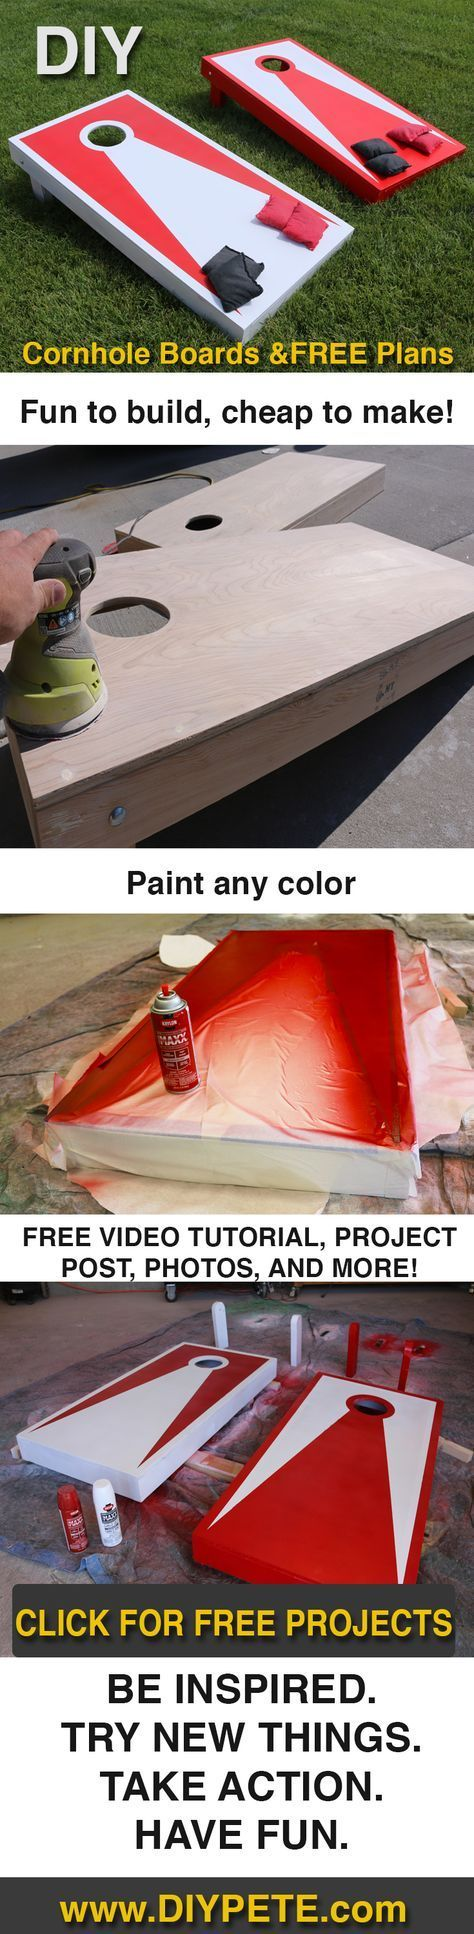 DIY Cornhole Boards! This is a super simple project that will lead to years of f...